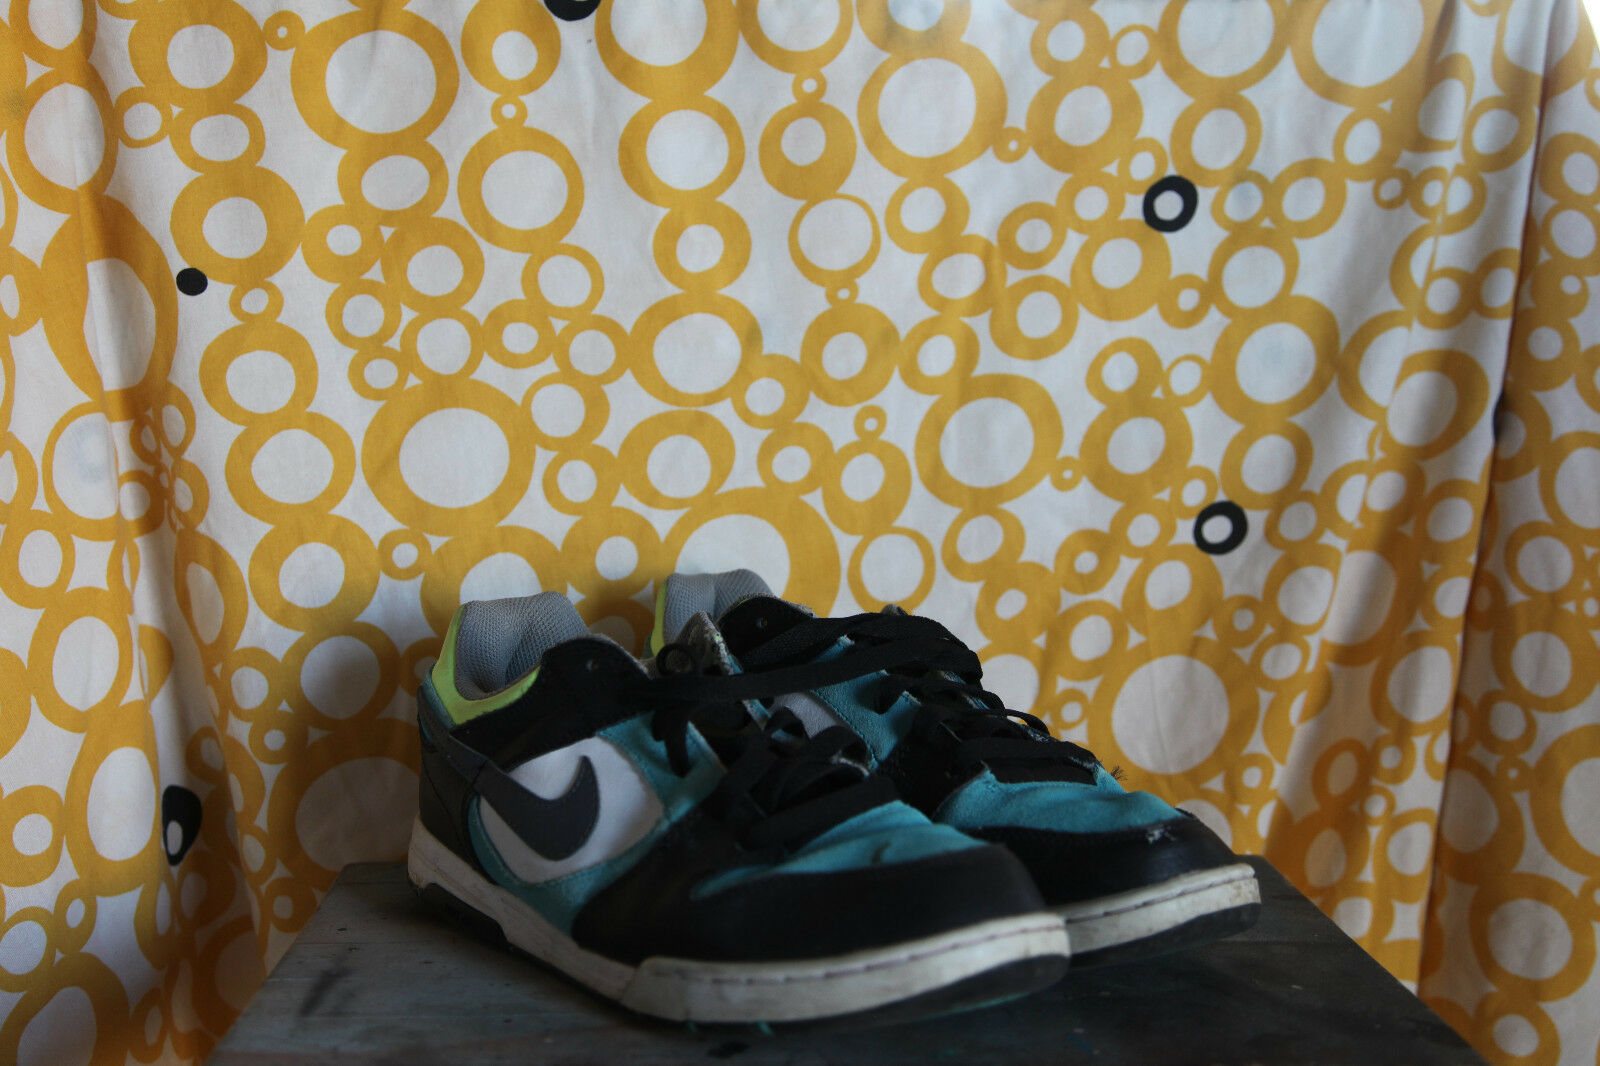 87ee248f1a Air Twillight bluee Turquois Low US 10 Nike Sz nxsfvq5589-Athletic ...